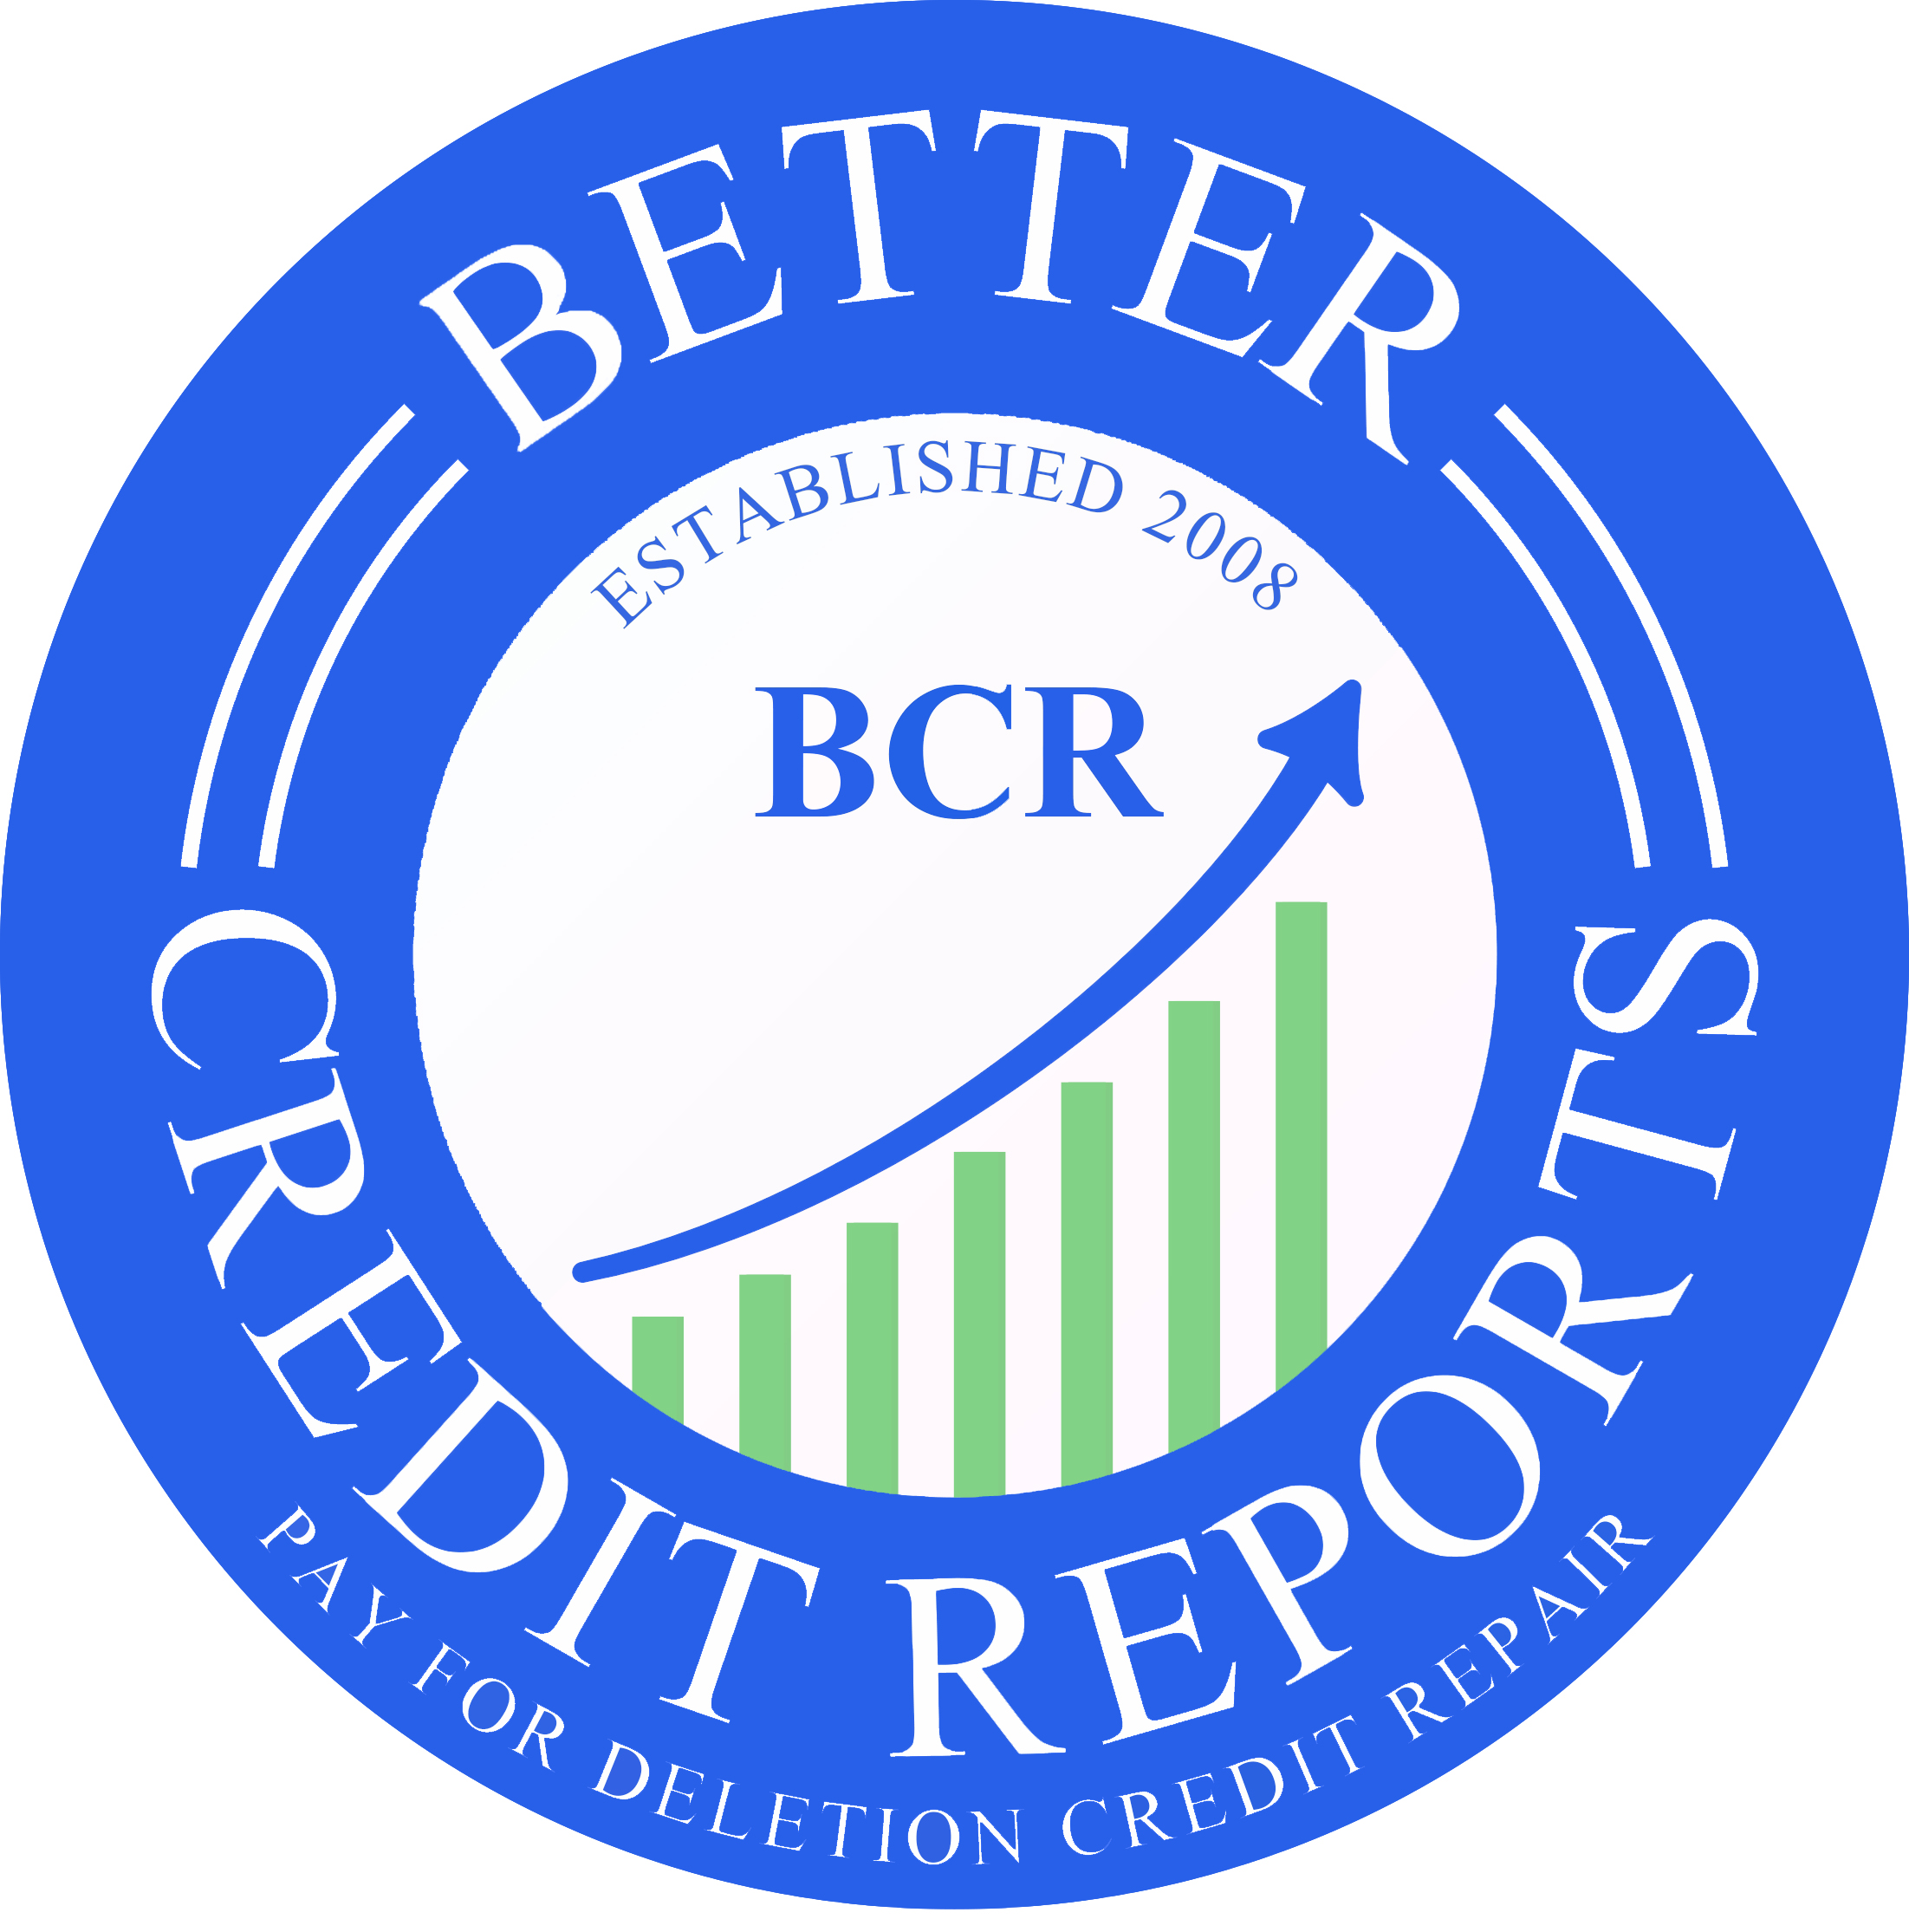 The Original Pay for Deletion Credit Repair Company